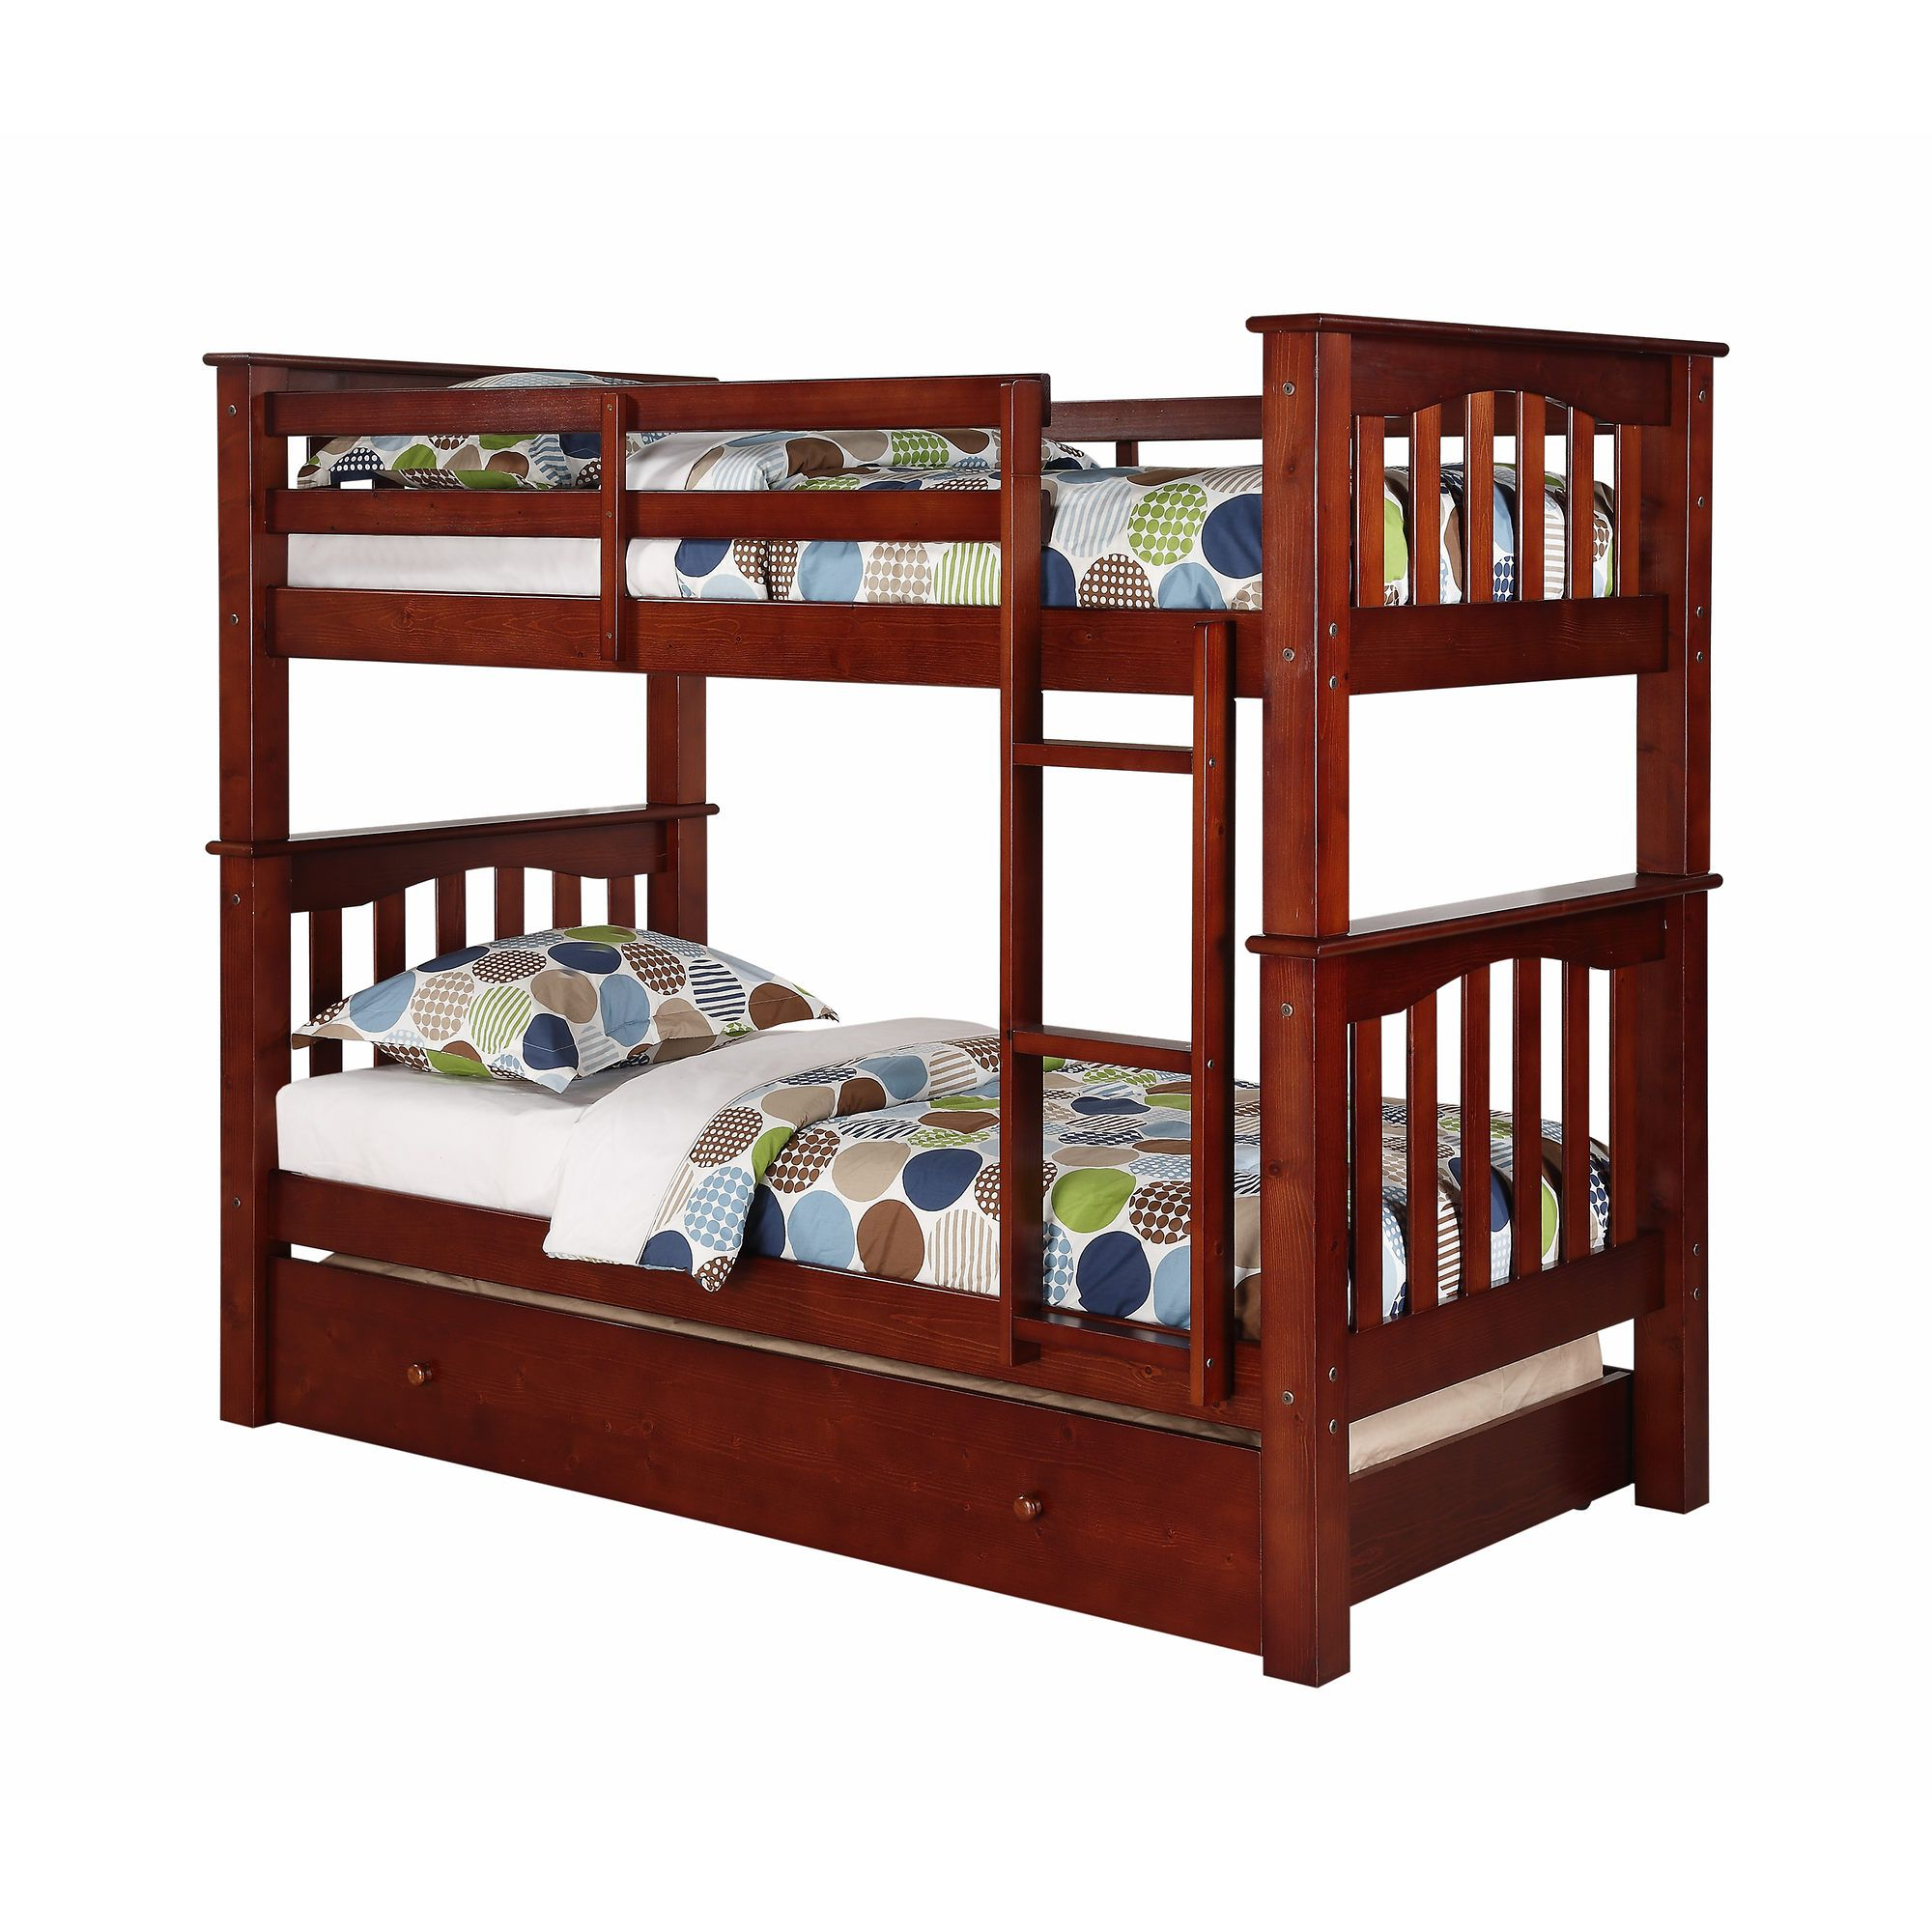 Berkley Jensen Twin Size Bunk Bed With Trundle This Is The Bed I Wanted To Get For Makayla But It Is Diy Bunk Bed Bunk Bed With Trundle Queen Bunk Beds